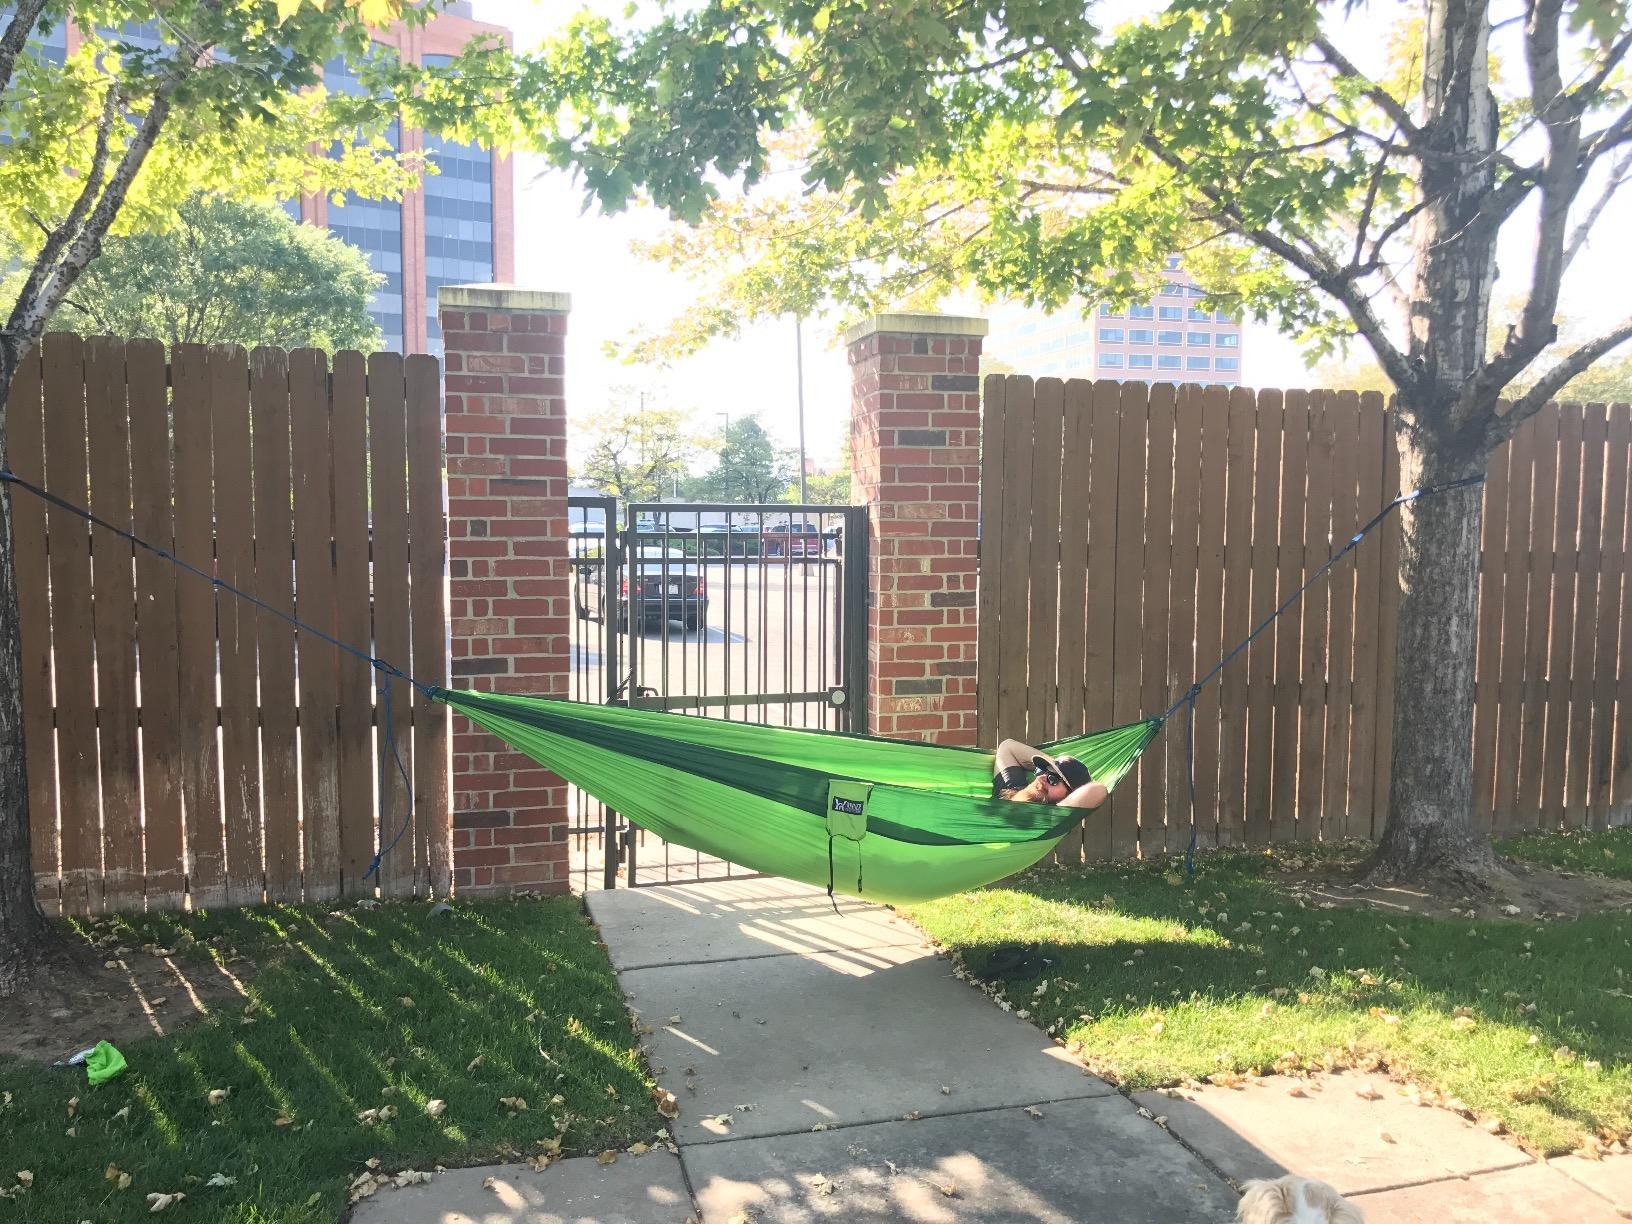 Hammock is made of quality material. Straps seem rugged enough to hang around any tree